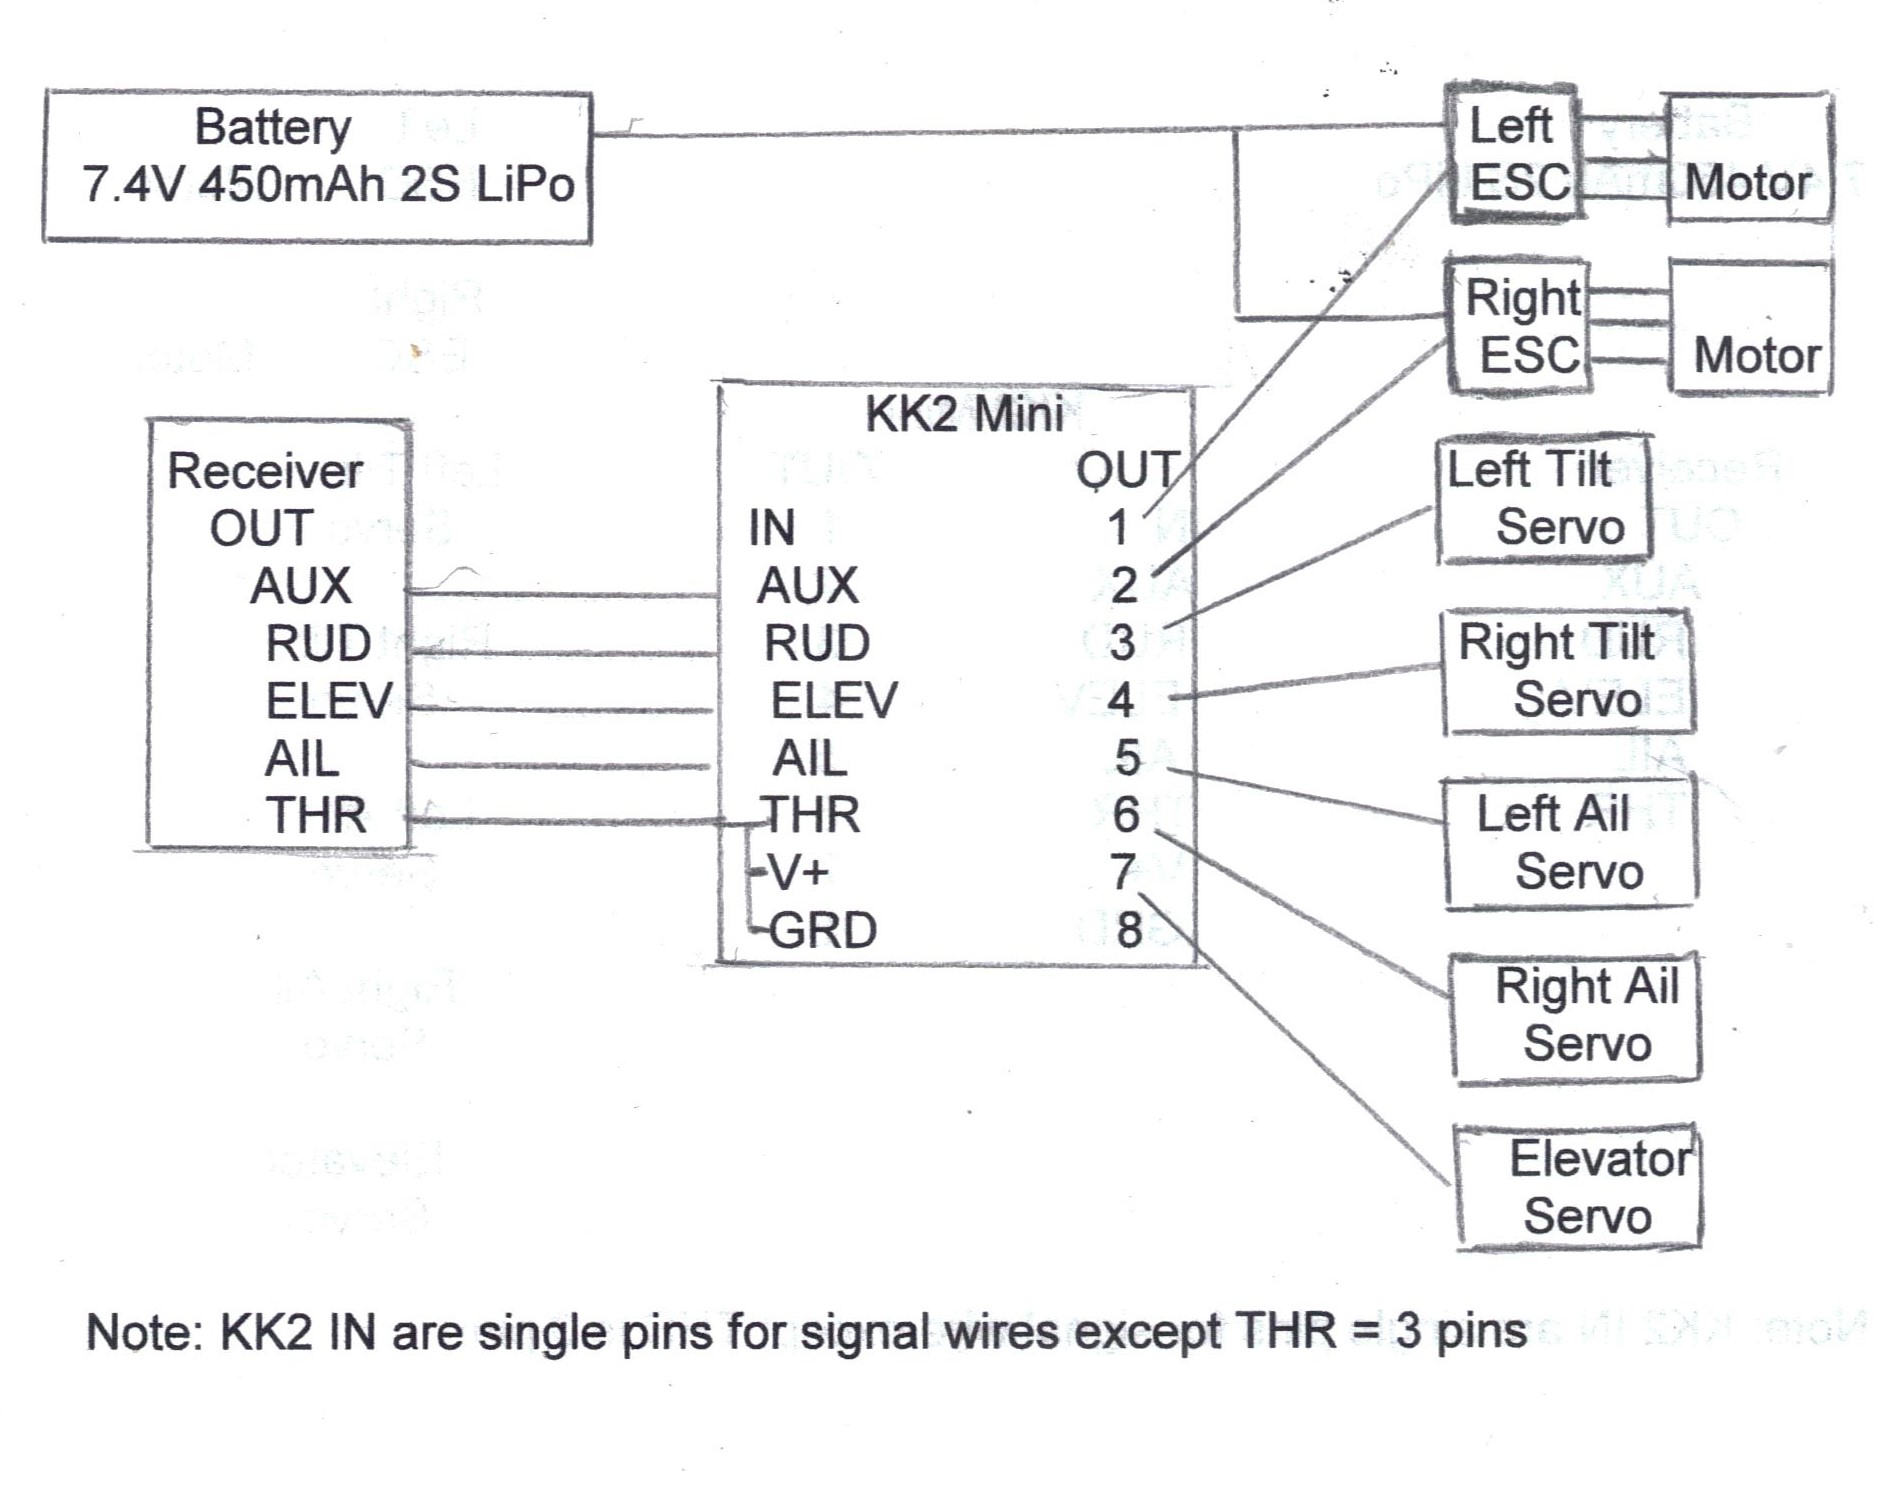 hight resolution of kk2 wiring 001 jpg